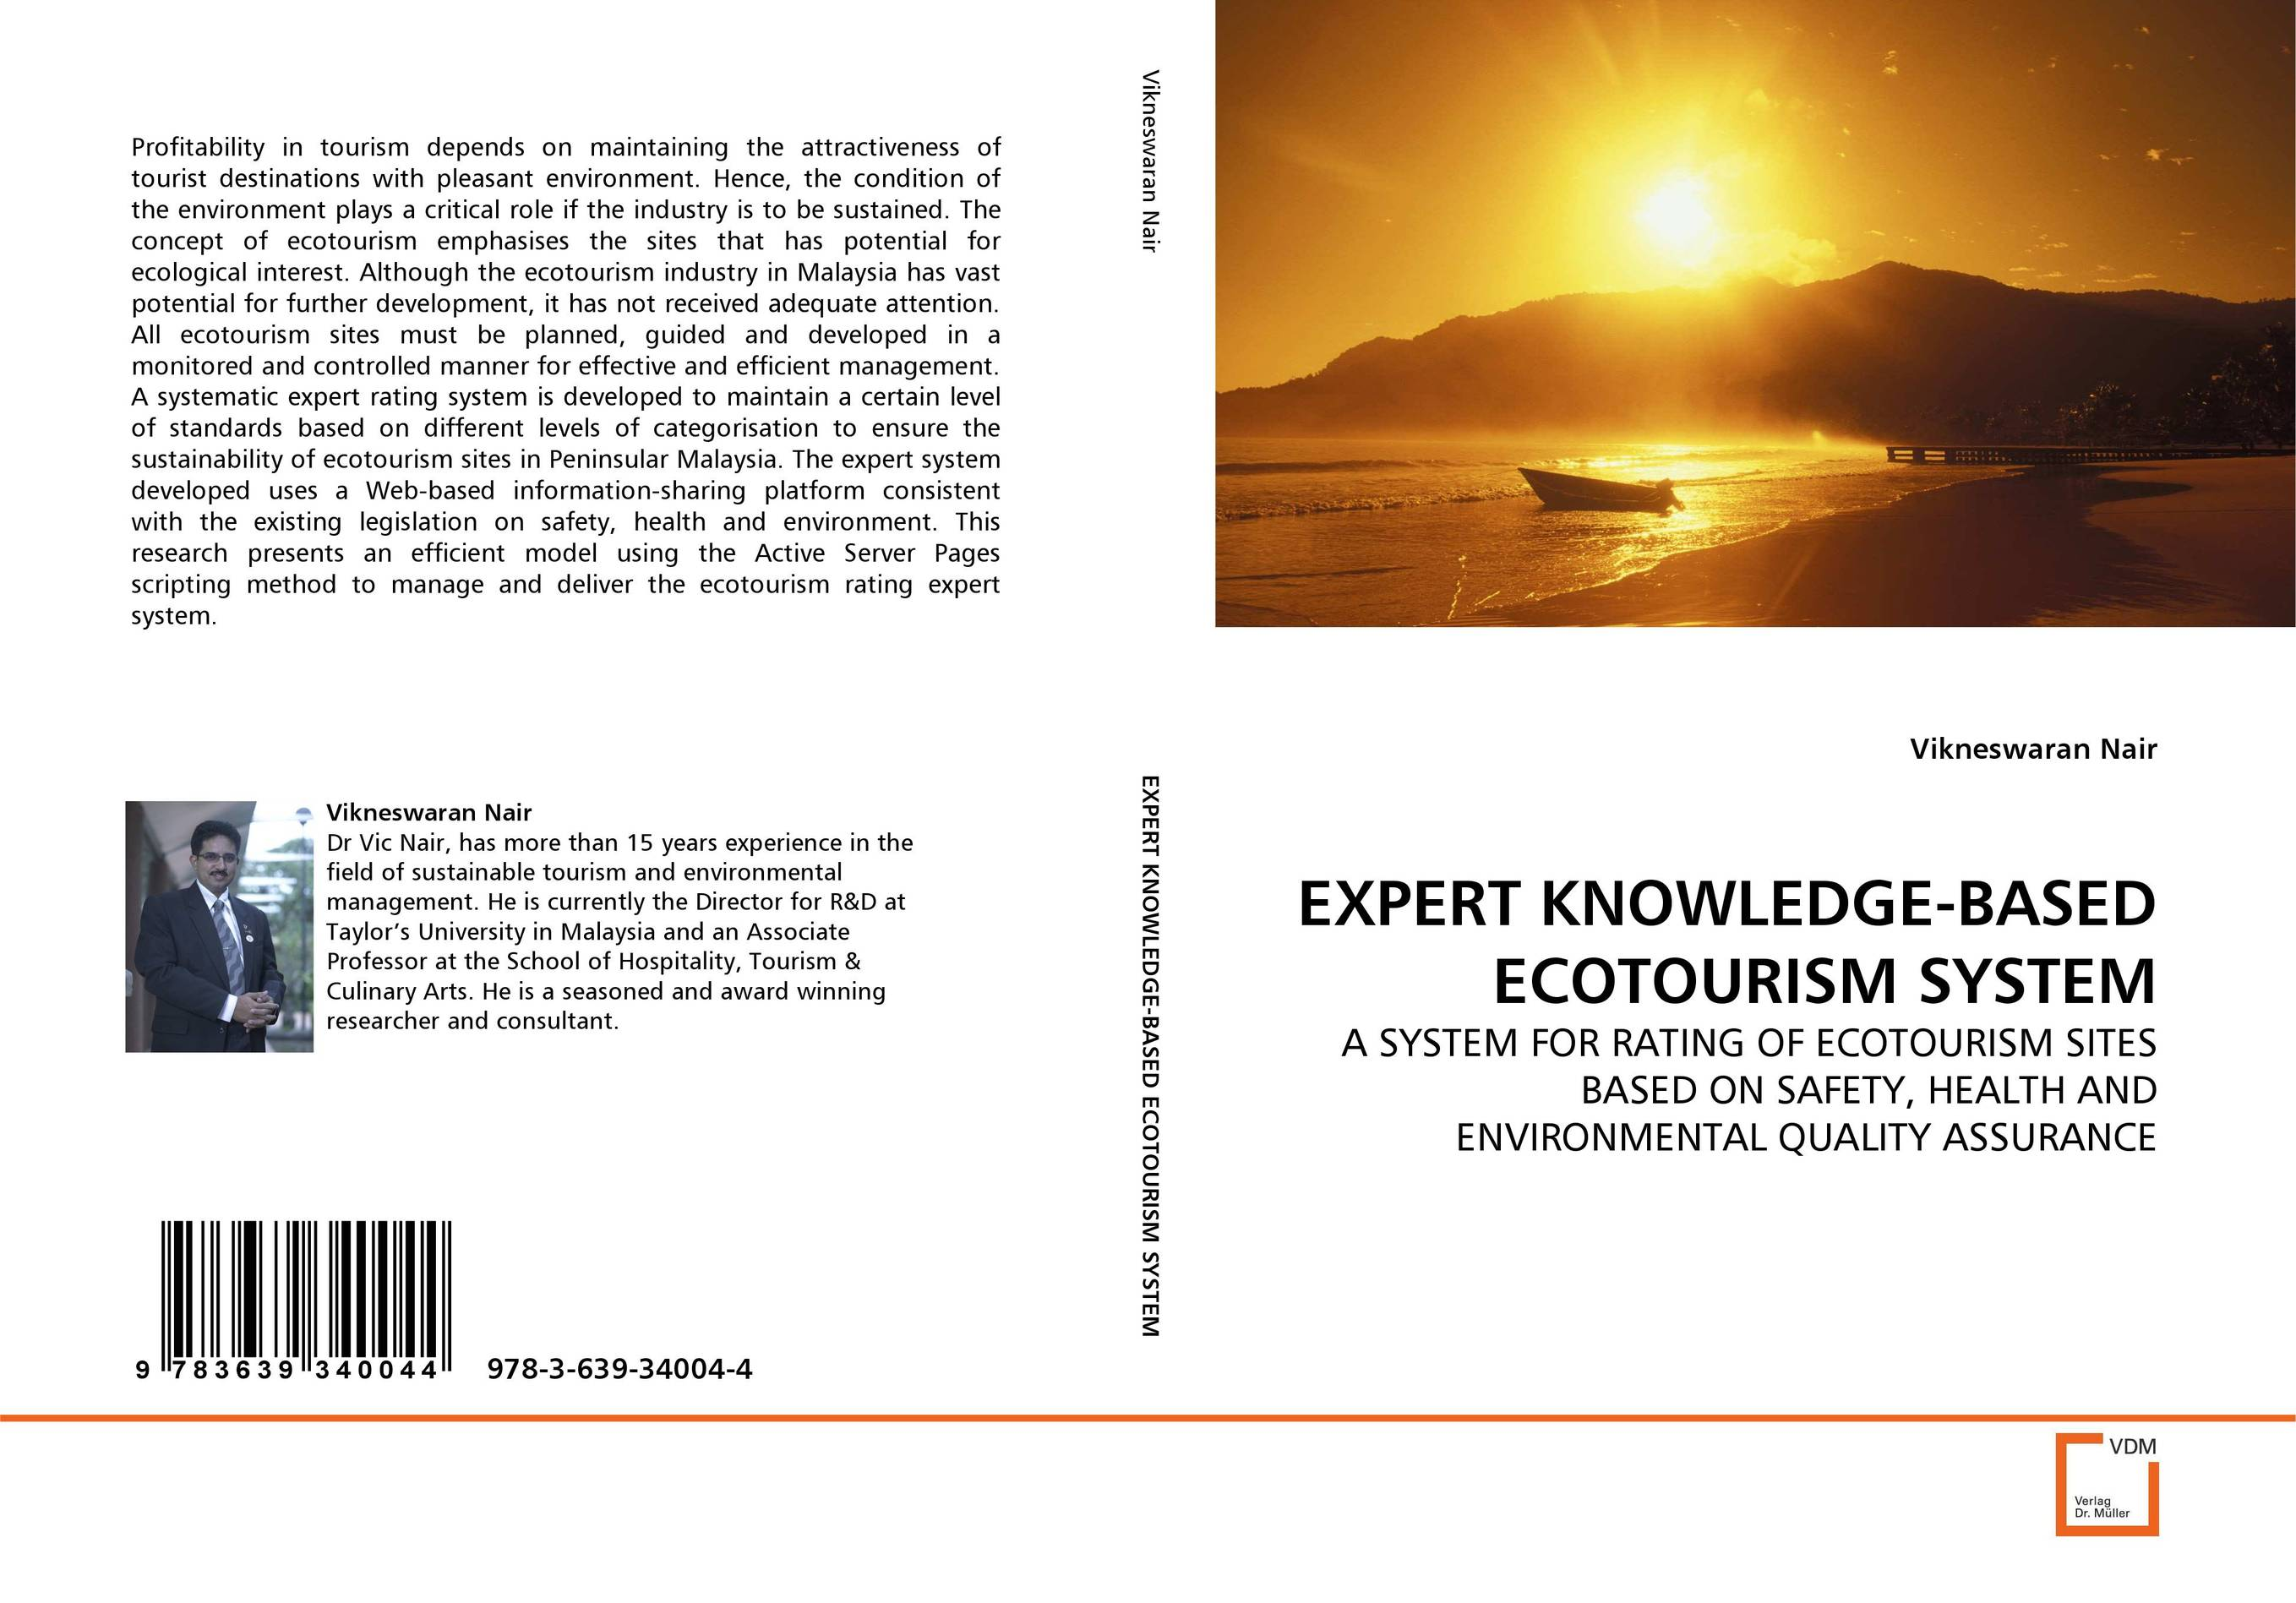 EXPERT KNOWLEDGE-BASED ECOTOURISM SYSTEM цена